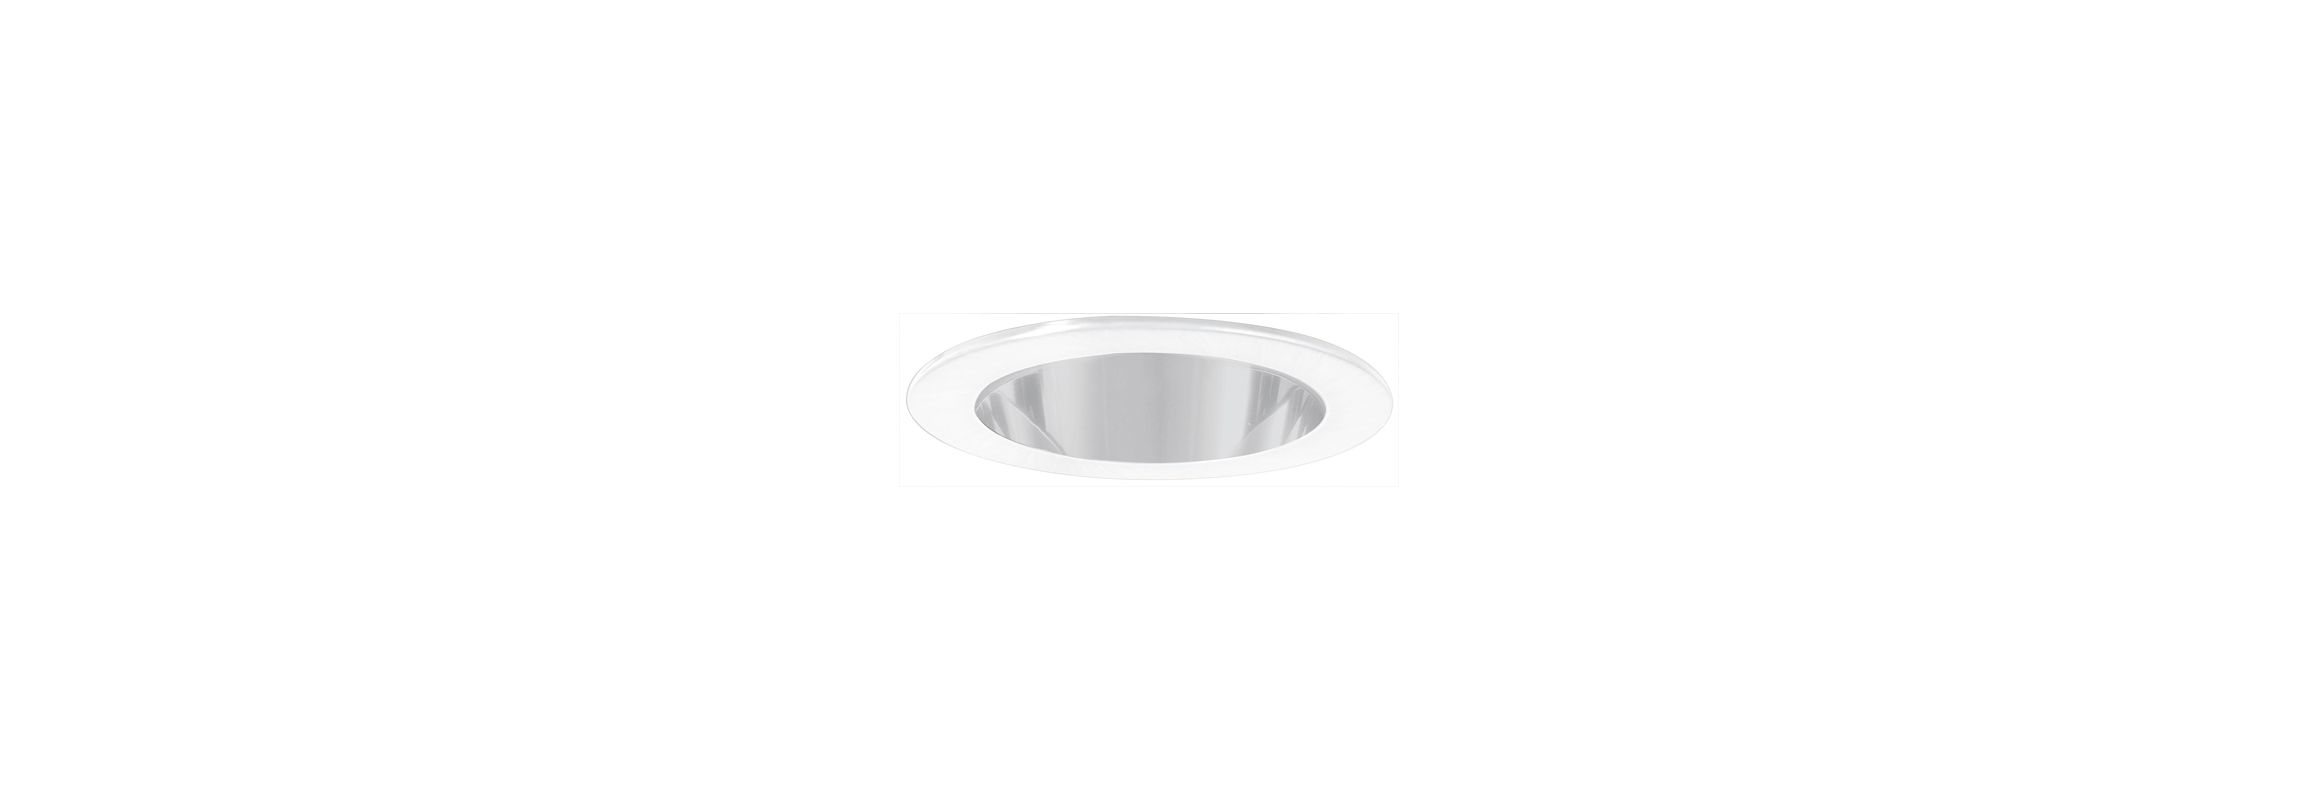 "Elco EL9111SH 4"" White Lexan Shower Trim with Clear Lens and Reflector"